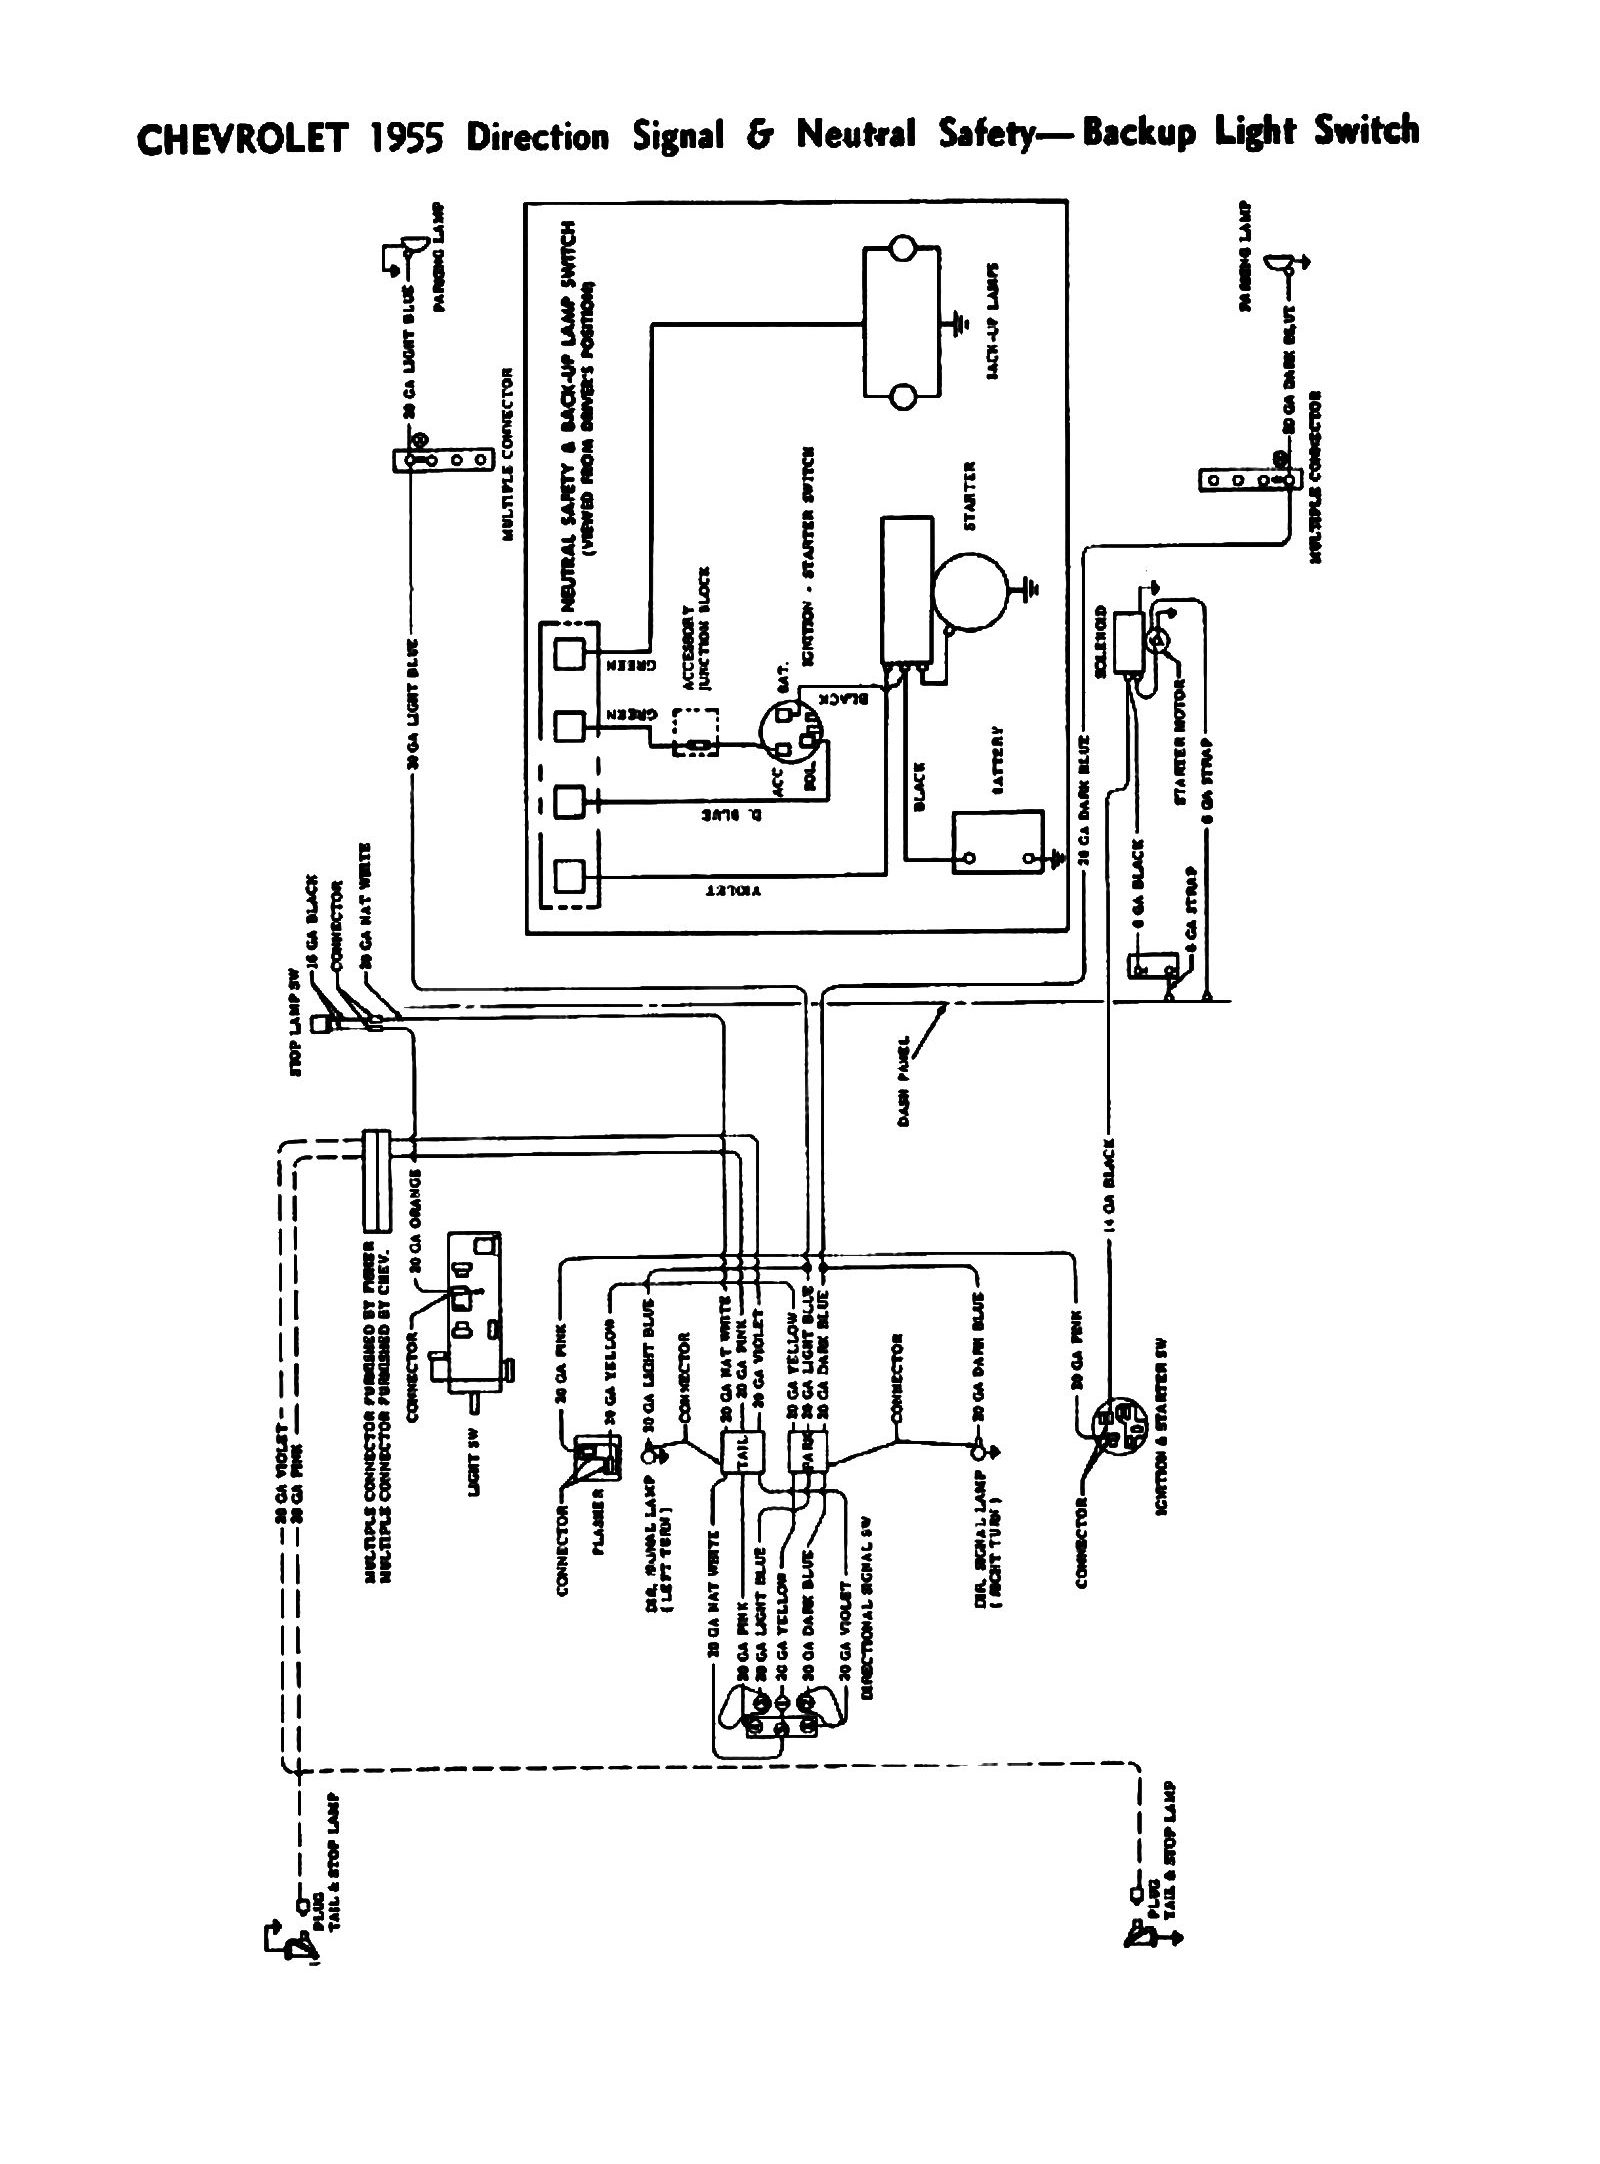 hight resolution of 56 chevy wiring harness schematic wiring diagram todays rh 8 9 12 1813weddingbarn com 327 chevy engine 265 chevy engine